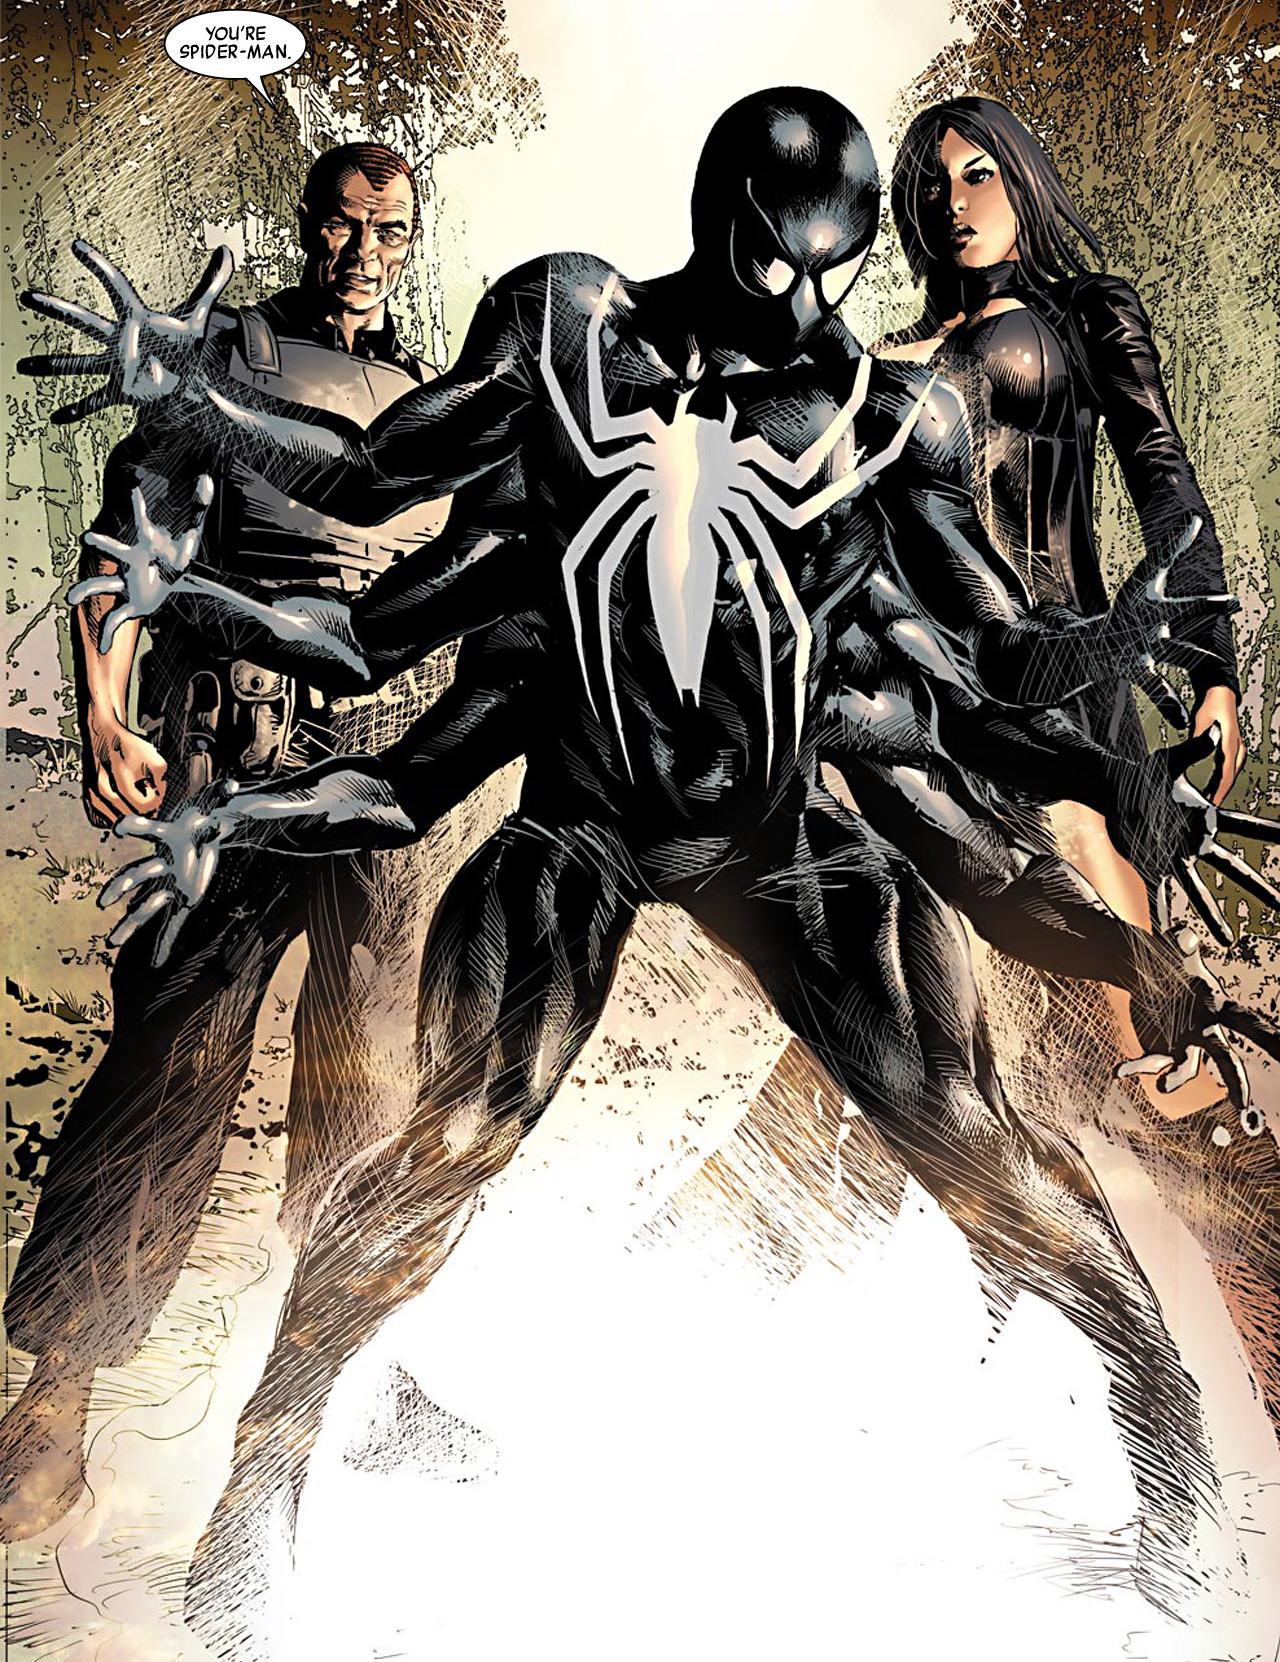 http://img4.wikia.nocookie.net/__cb20111110015708/marveldatabase/images/3/38/Ai_Apaec_(Earth-616)_New_Avengers_Vol_2_18.png